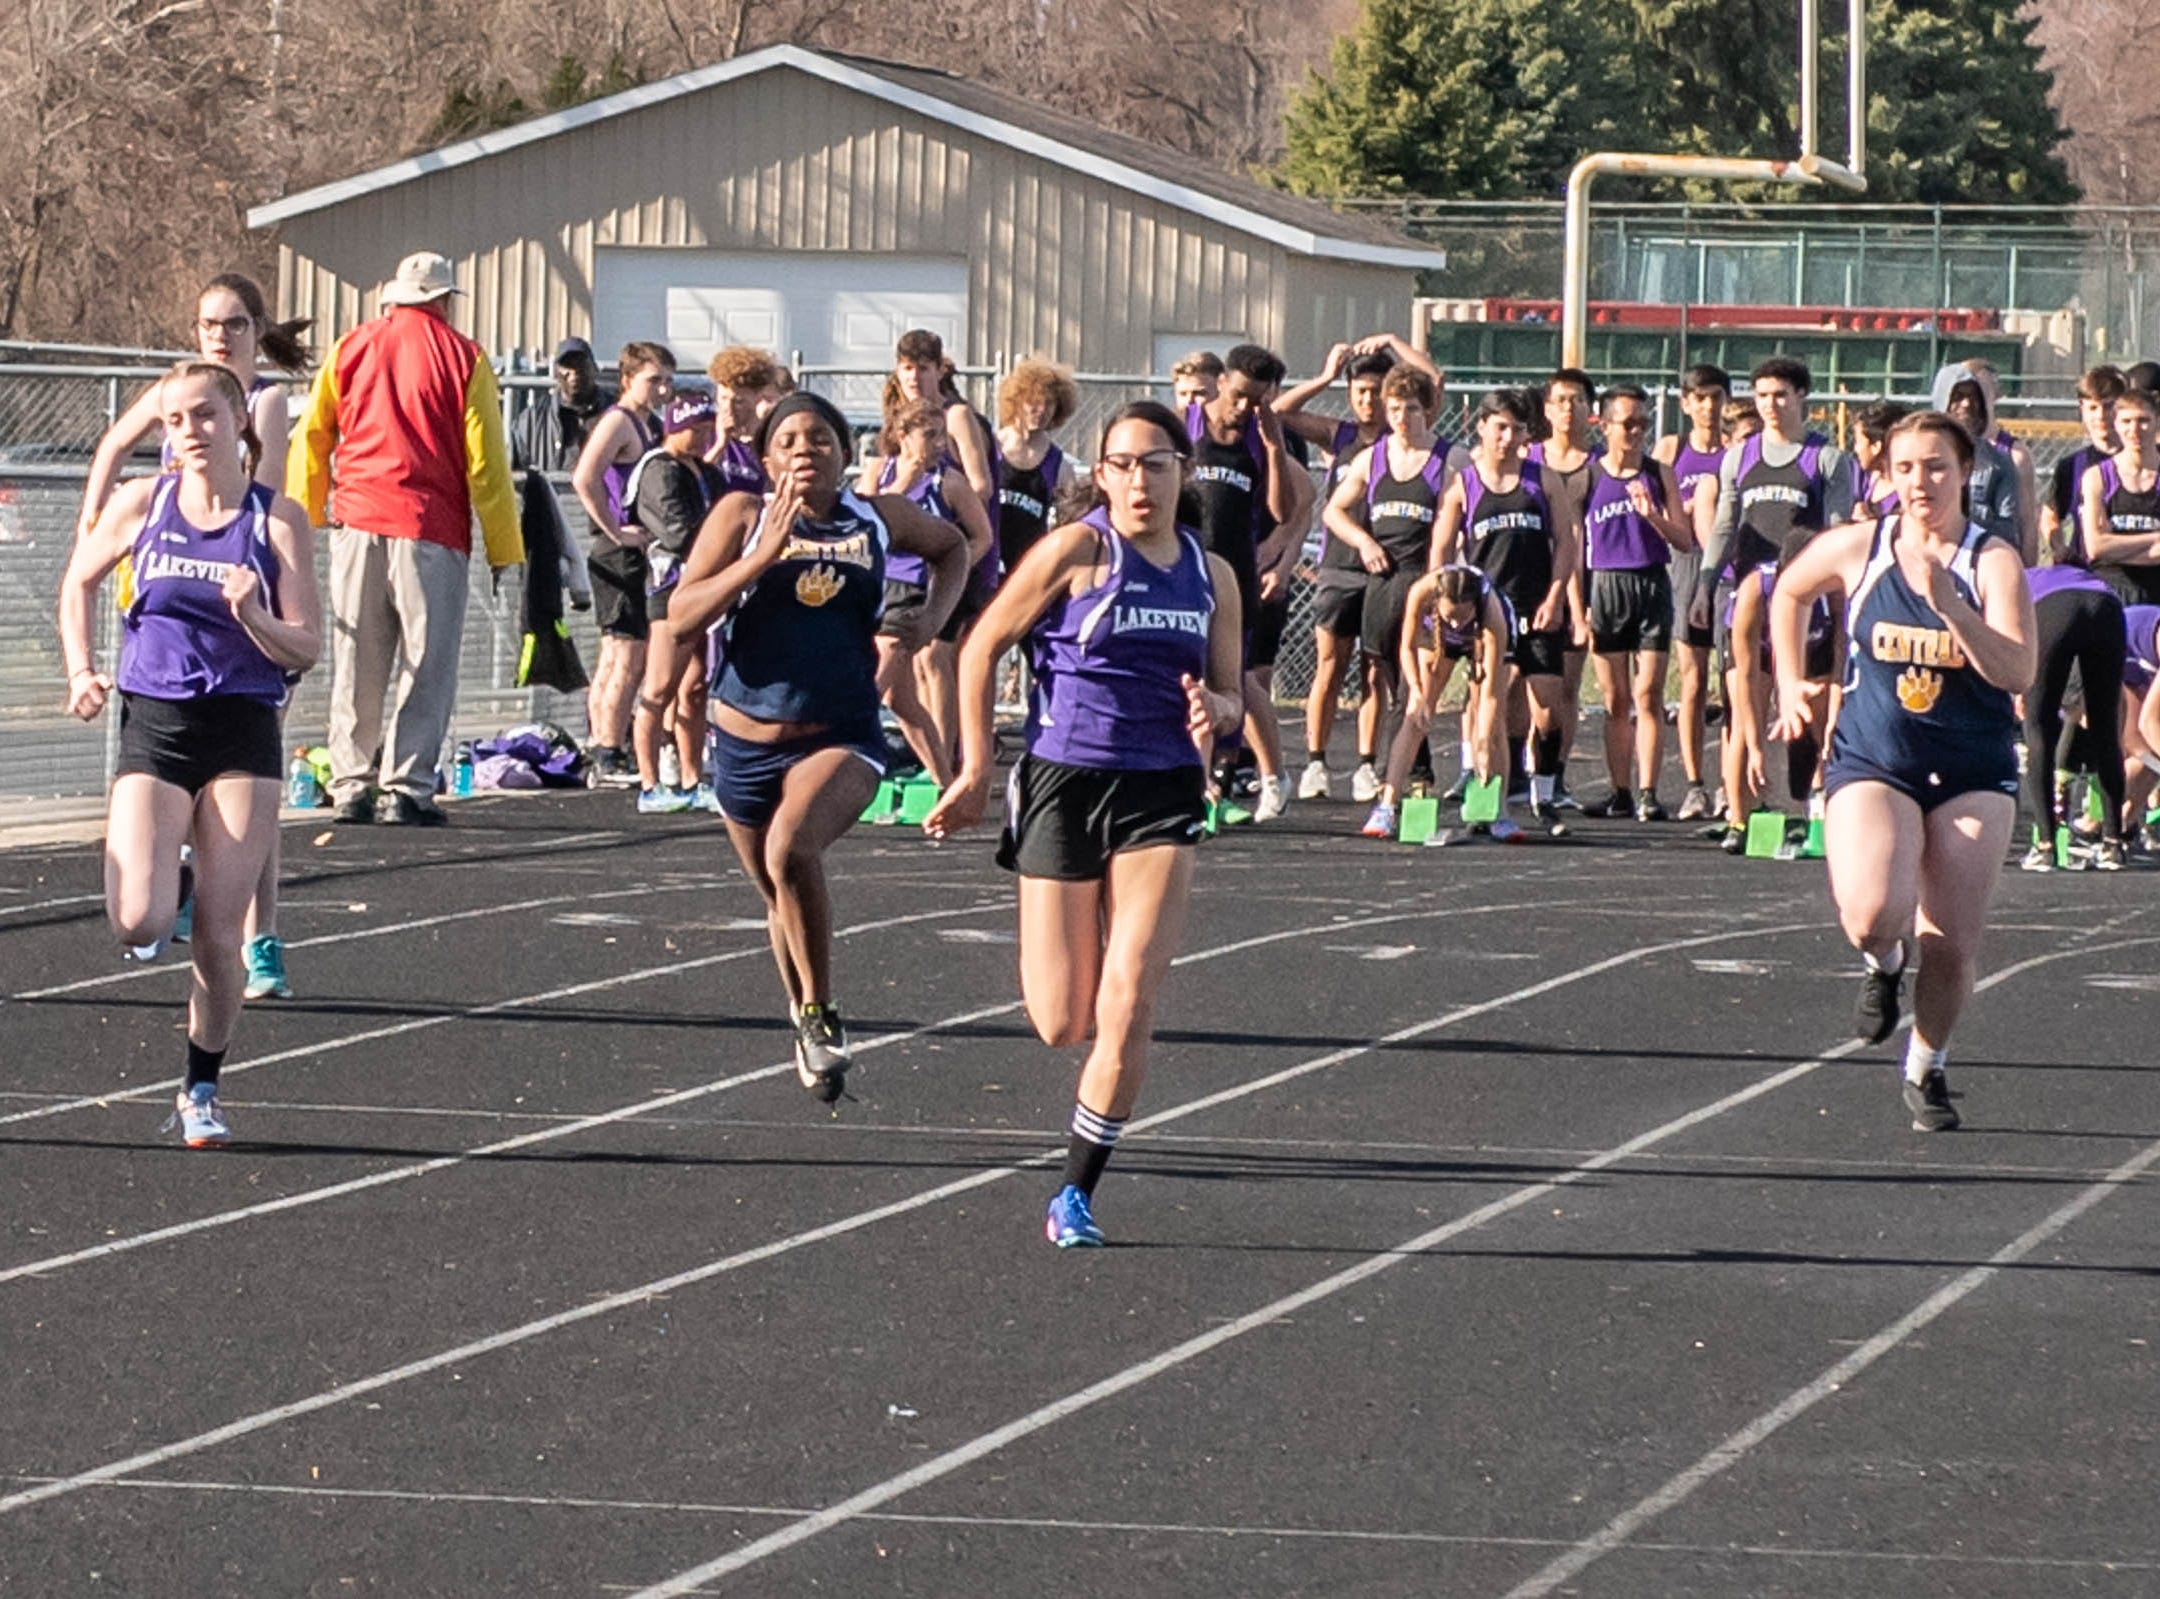 Lakeview and Battle Creek Central runners compete at Lakeview High School during a dual meet held on 4/9/19.